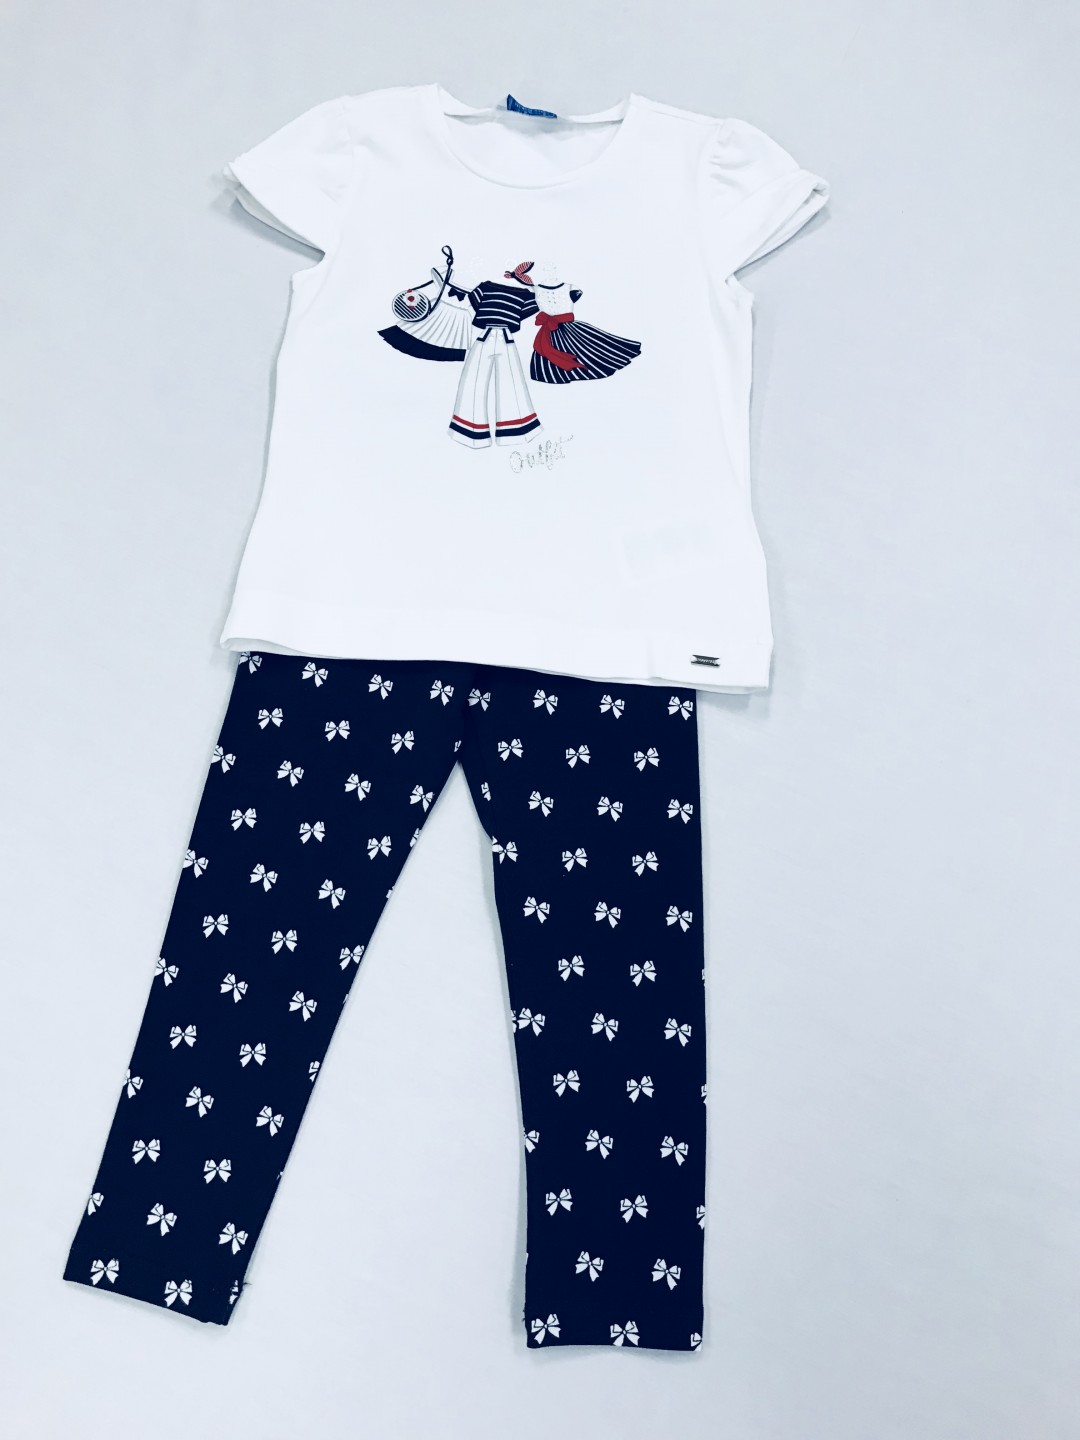 WHITE TOP AND PATTERNED PANTS 2-PIECE SET SIZES 3-7